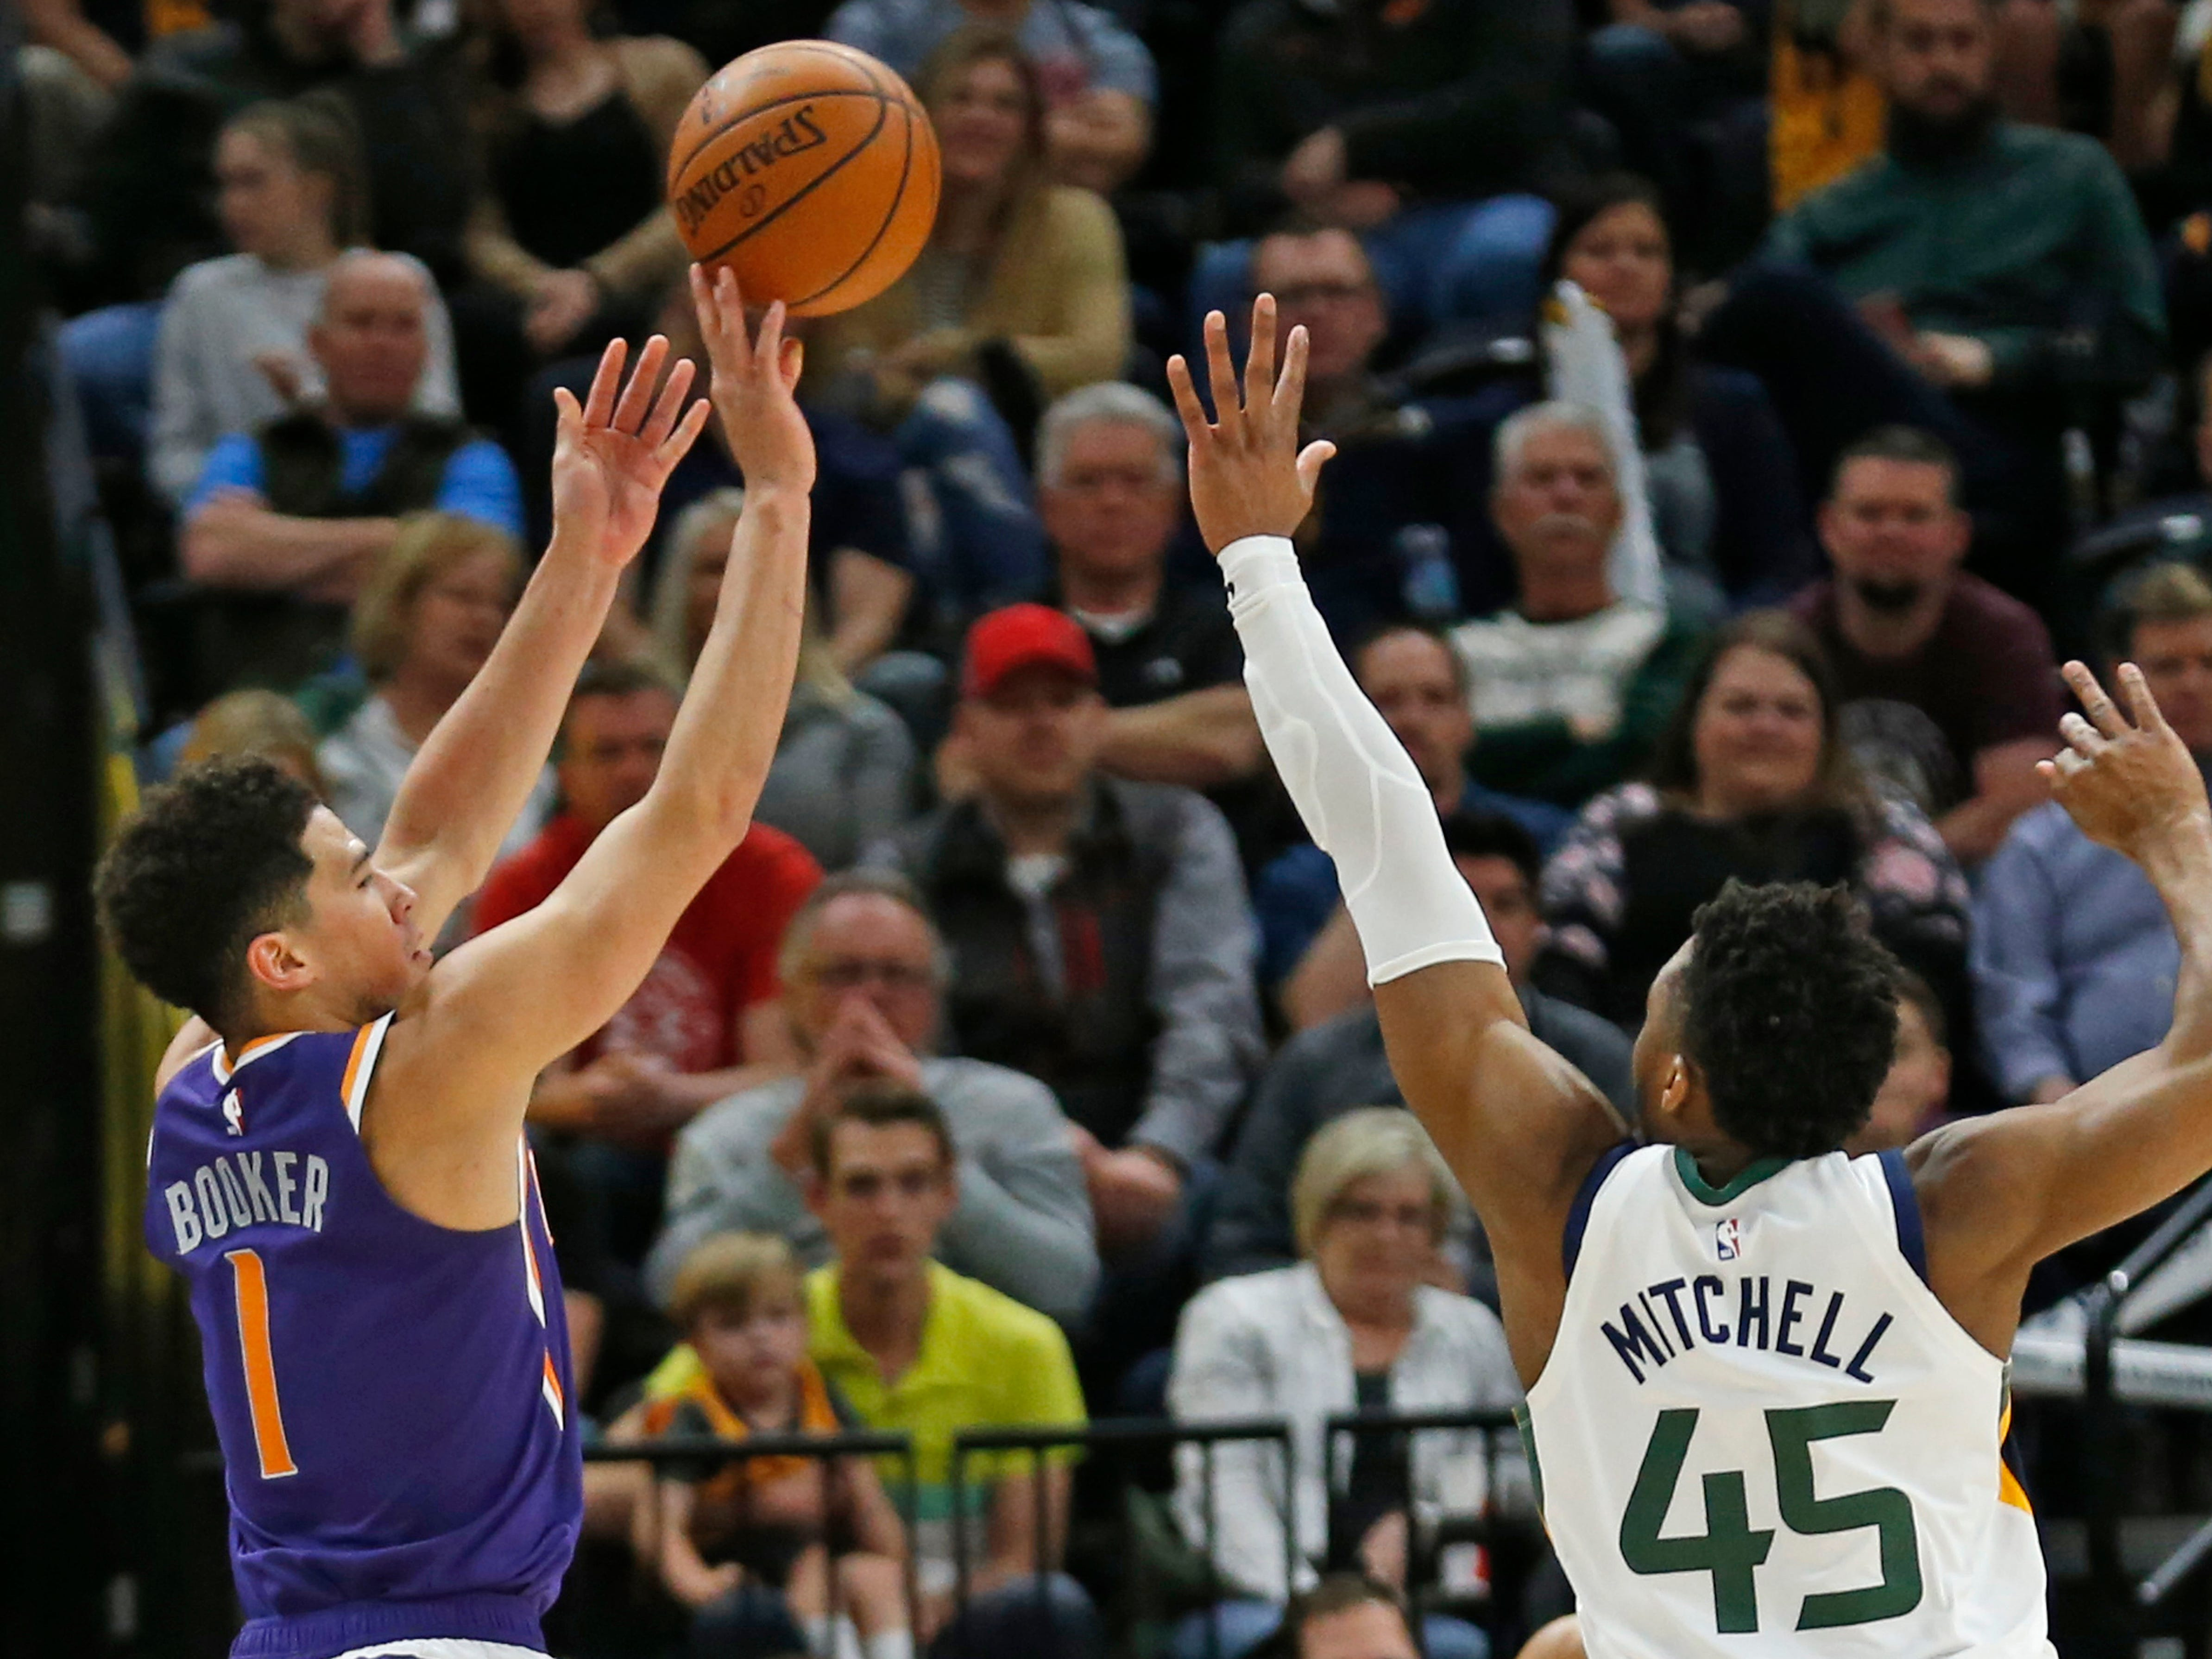 Phoenix Suns guard Devin Booker (1) shoots as Utah Jazz guard Donovan Mitchell (45) defends during the second half of an NBA basketball game Monday, March 25, 2019, in Salt Lake City.